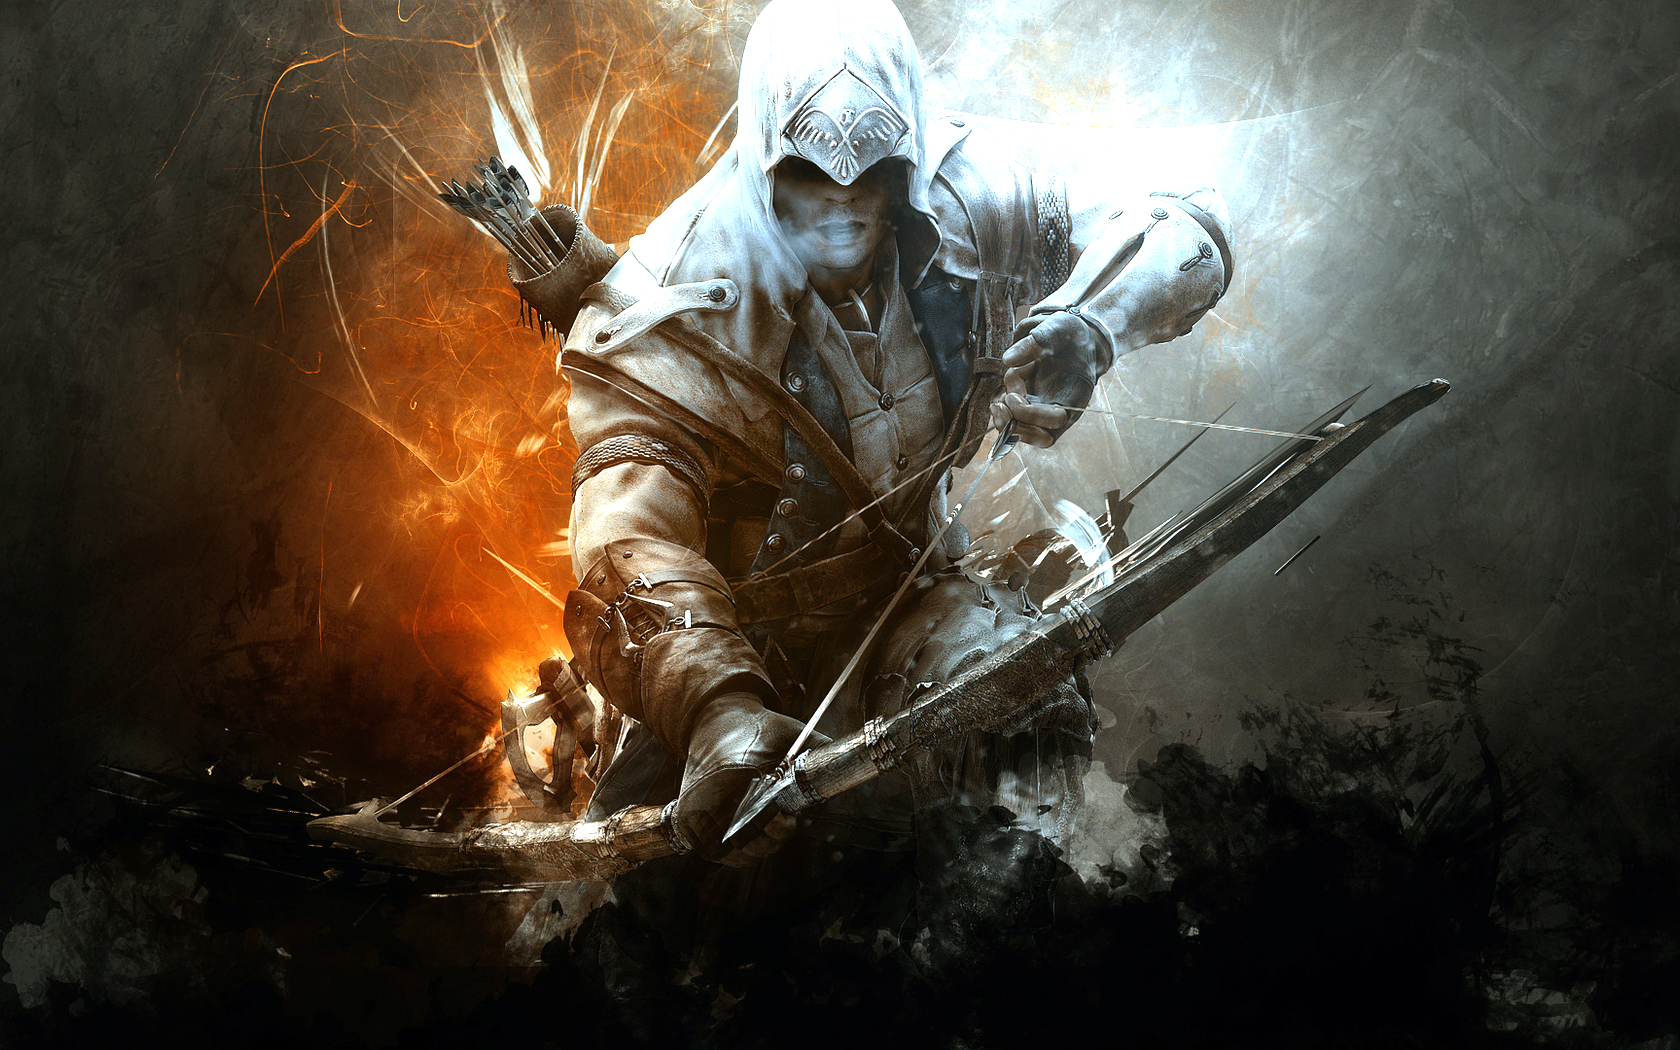 Assassins creed wallpaper 1680x1050